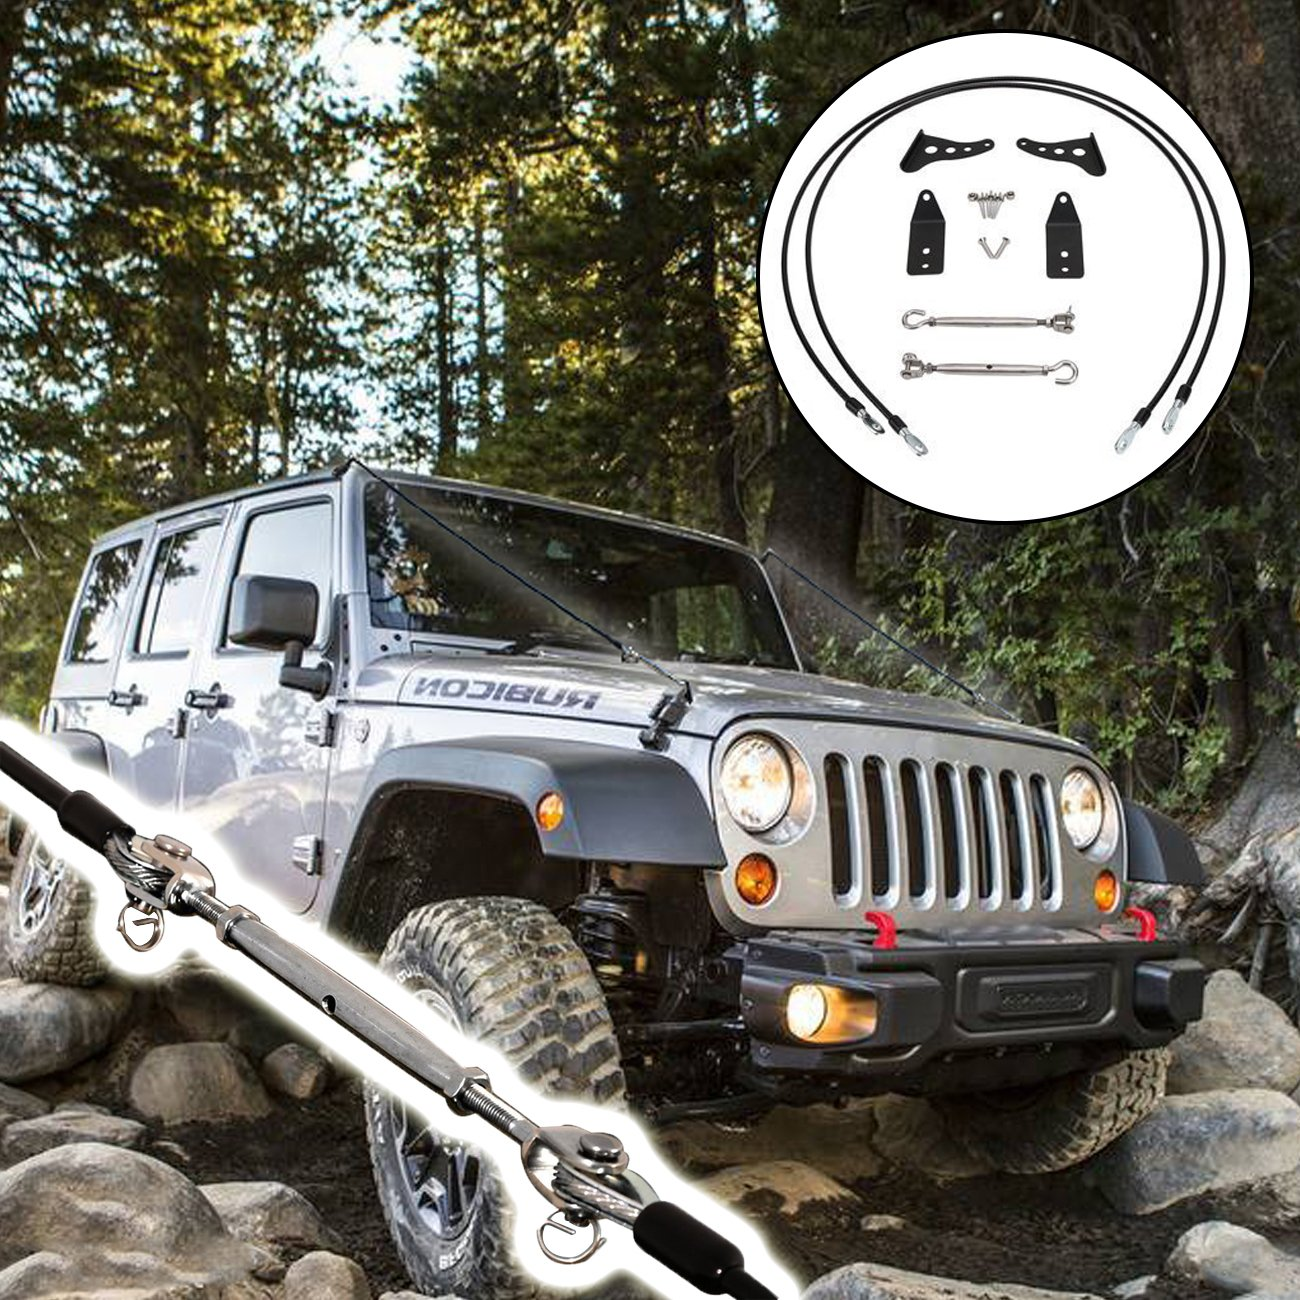 Limb Risers Kit (for JK Jeep Wrangler 2007-2017) | Through the jungle Protector, Obstacle Eliminate Rope BuyInHouse